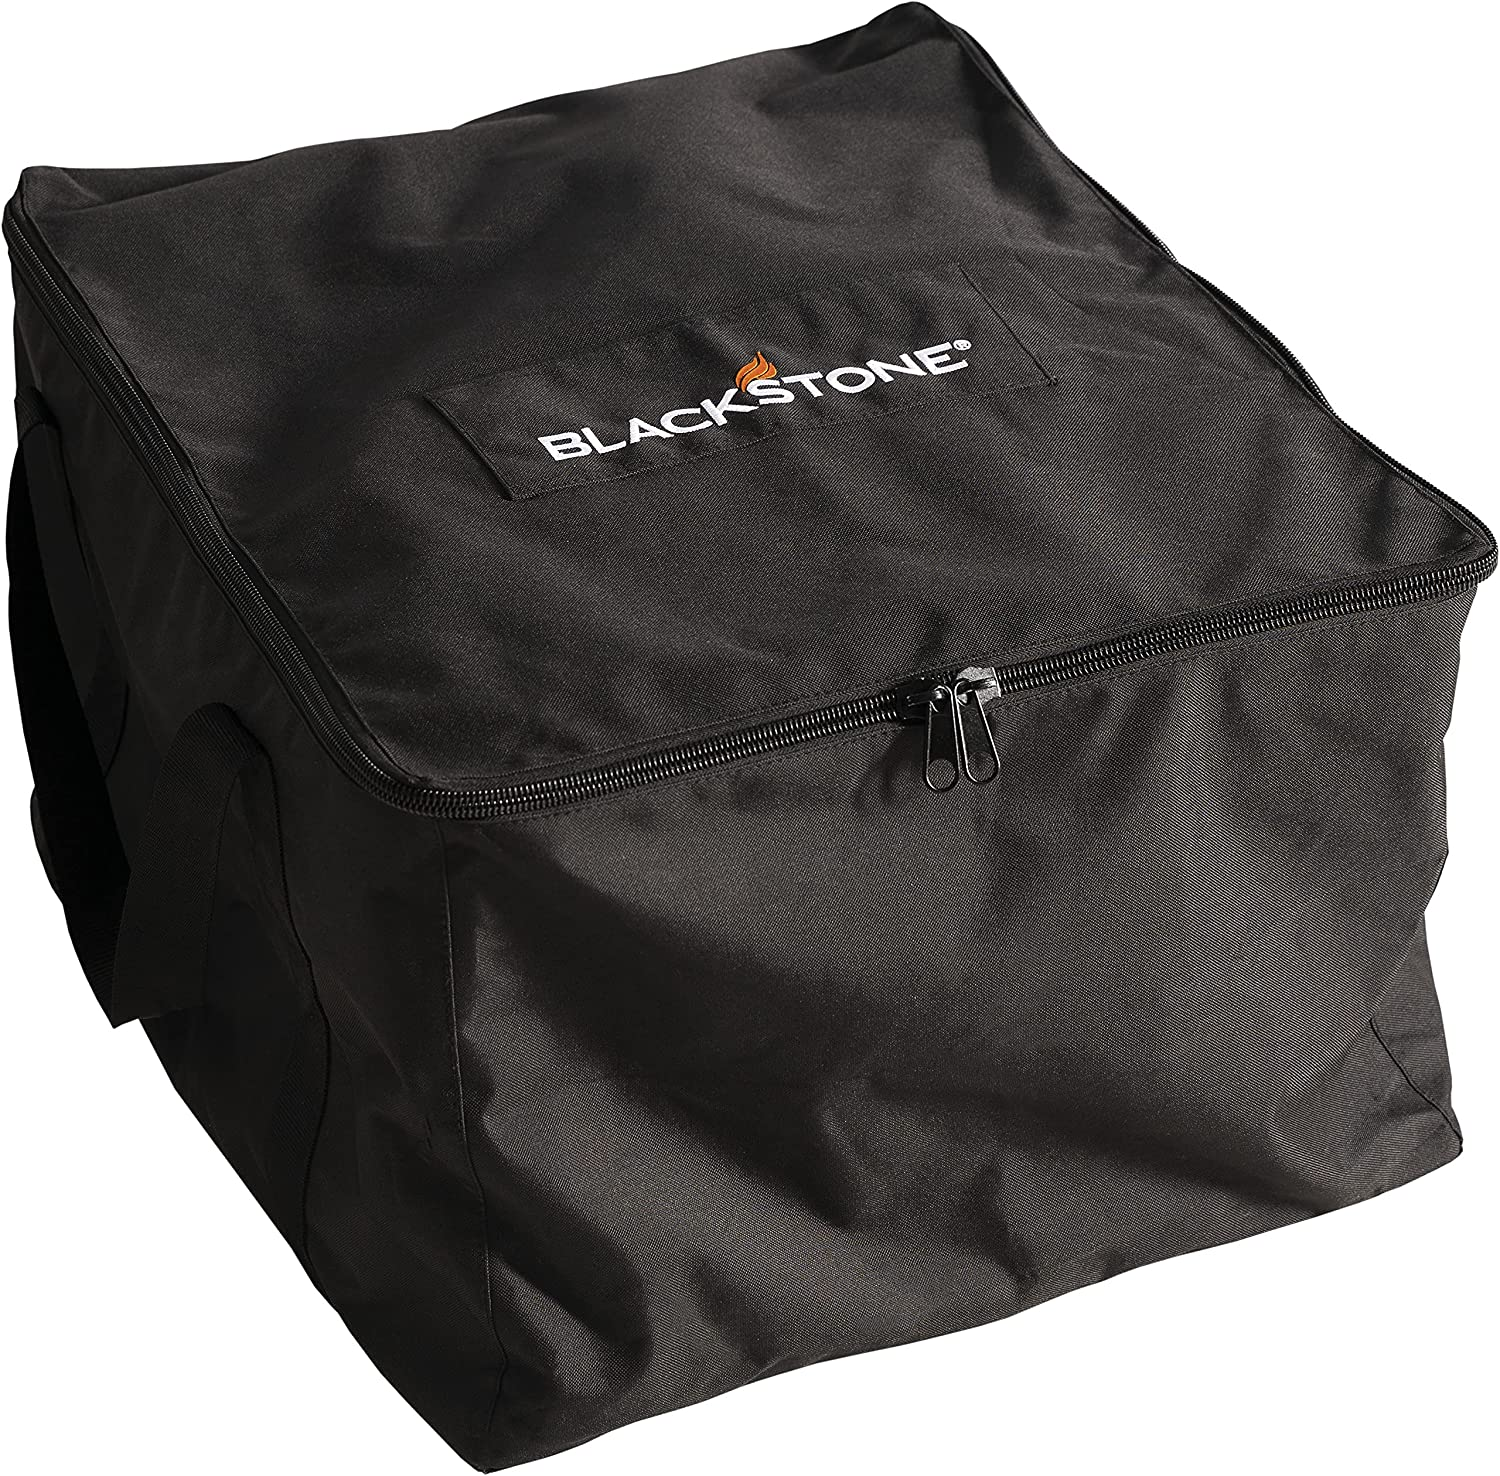 Blackstone 5486 Tabletop Griddle Carry Fits Super sale period limited Recommended Portable Bag Inch 17